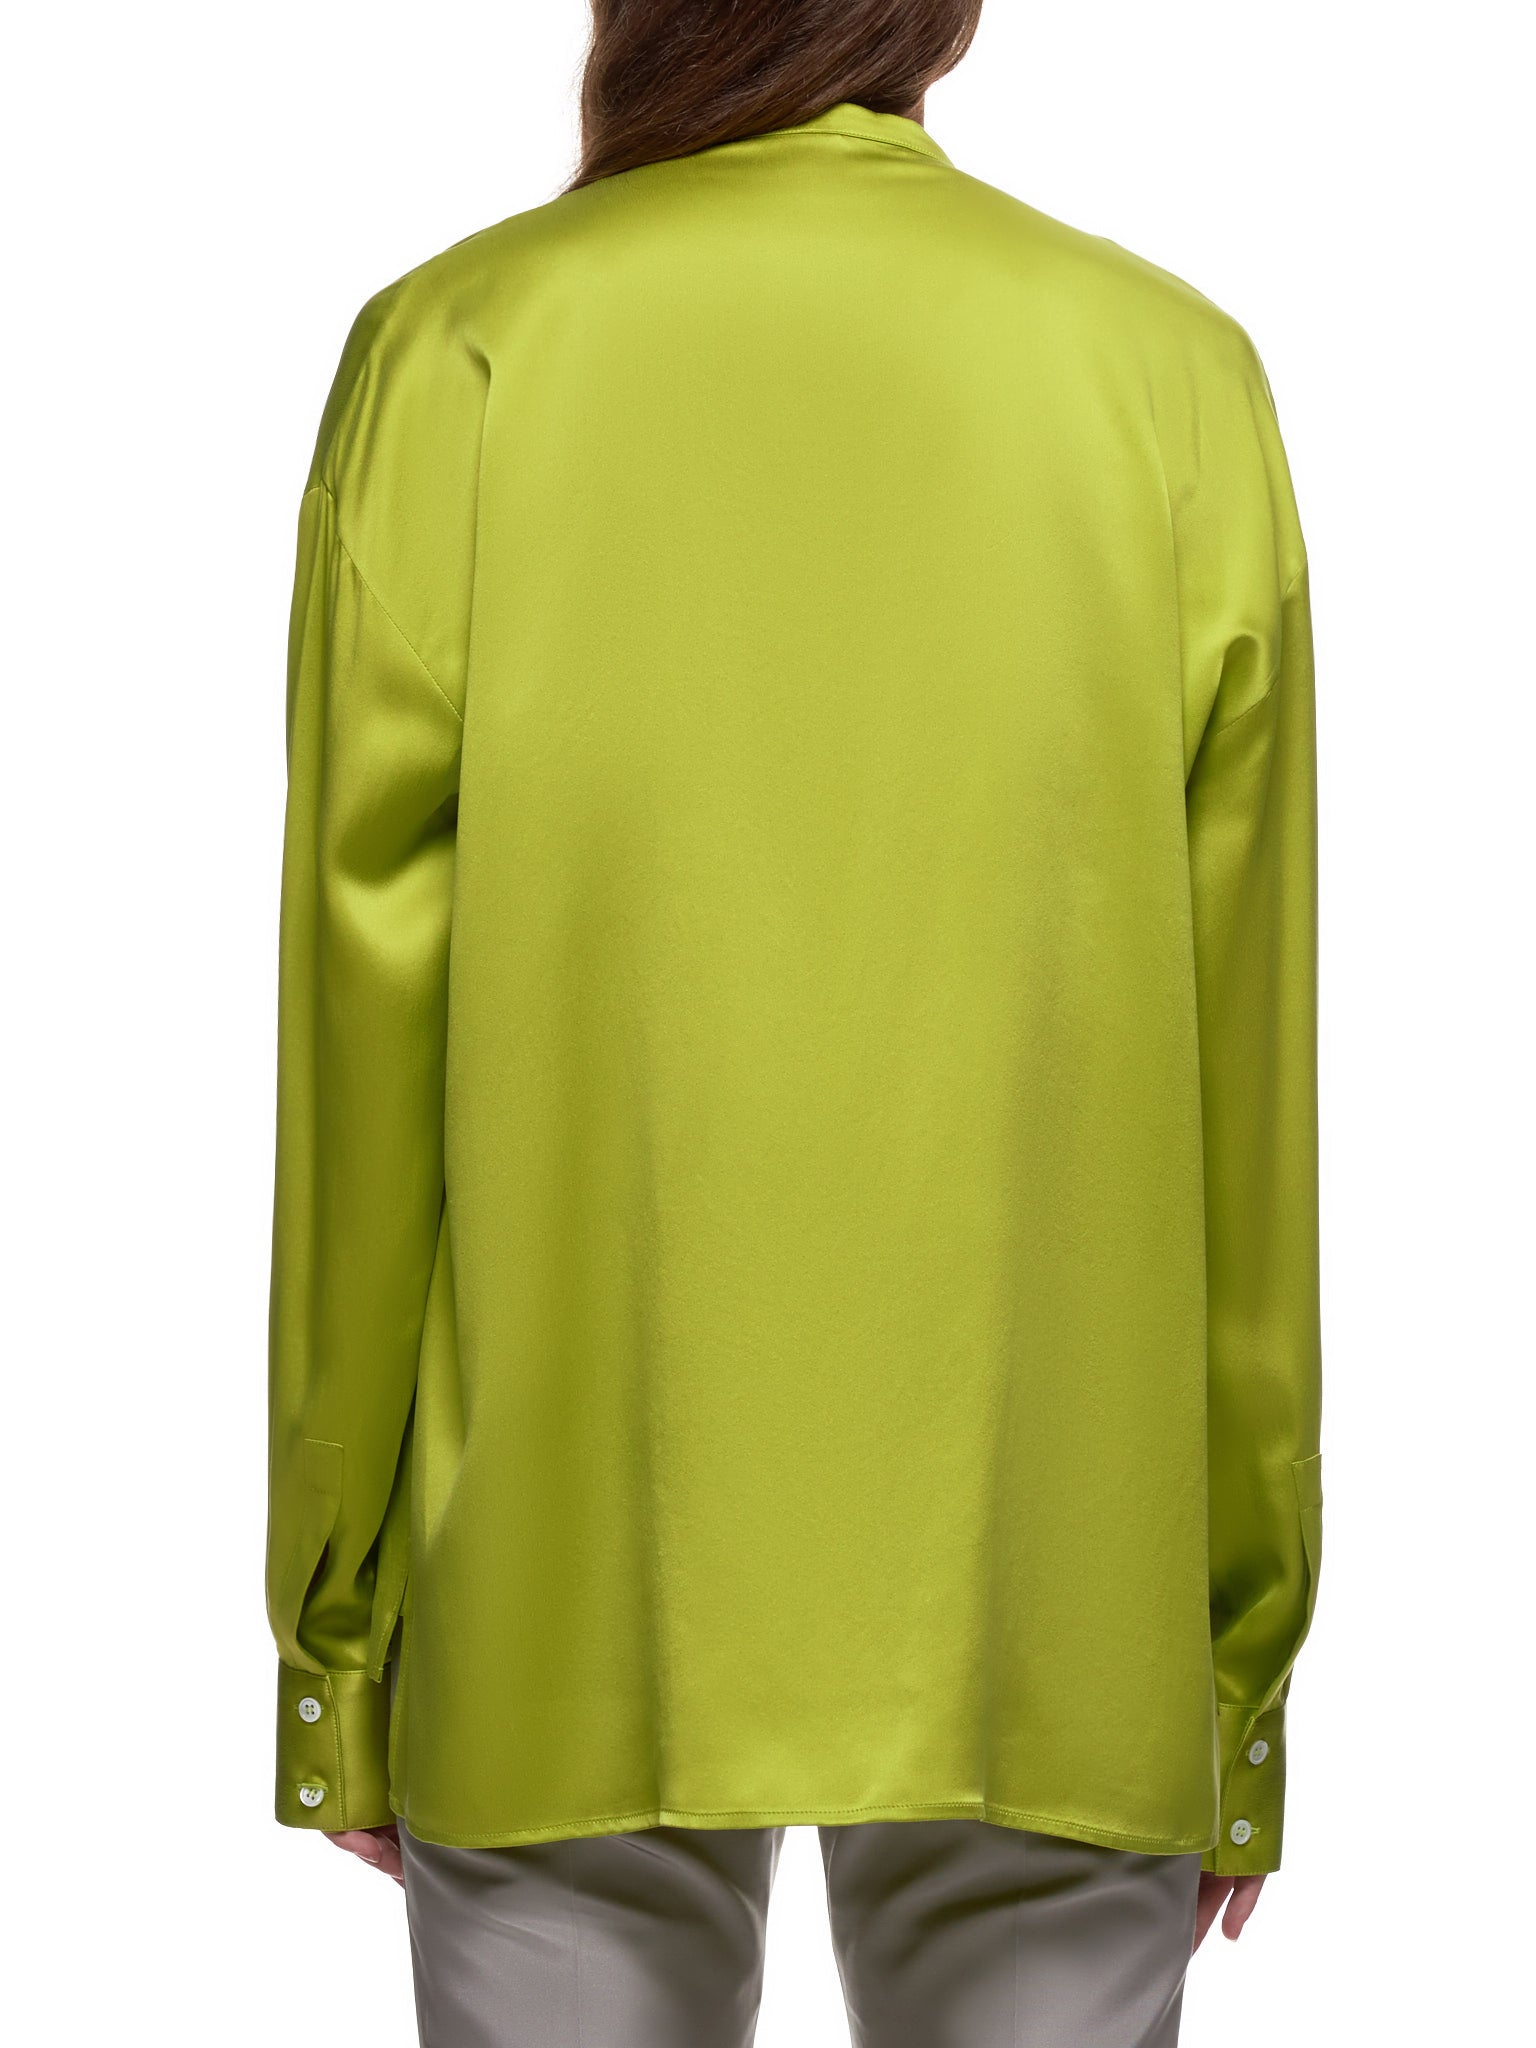 Haider Ackermann Shirt | H.Lorenzo Back